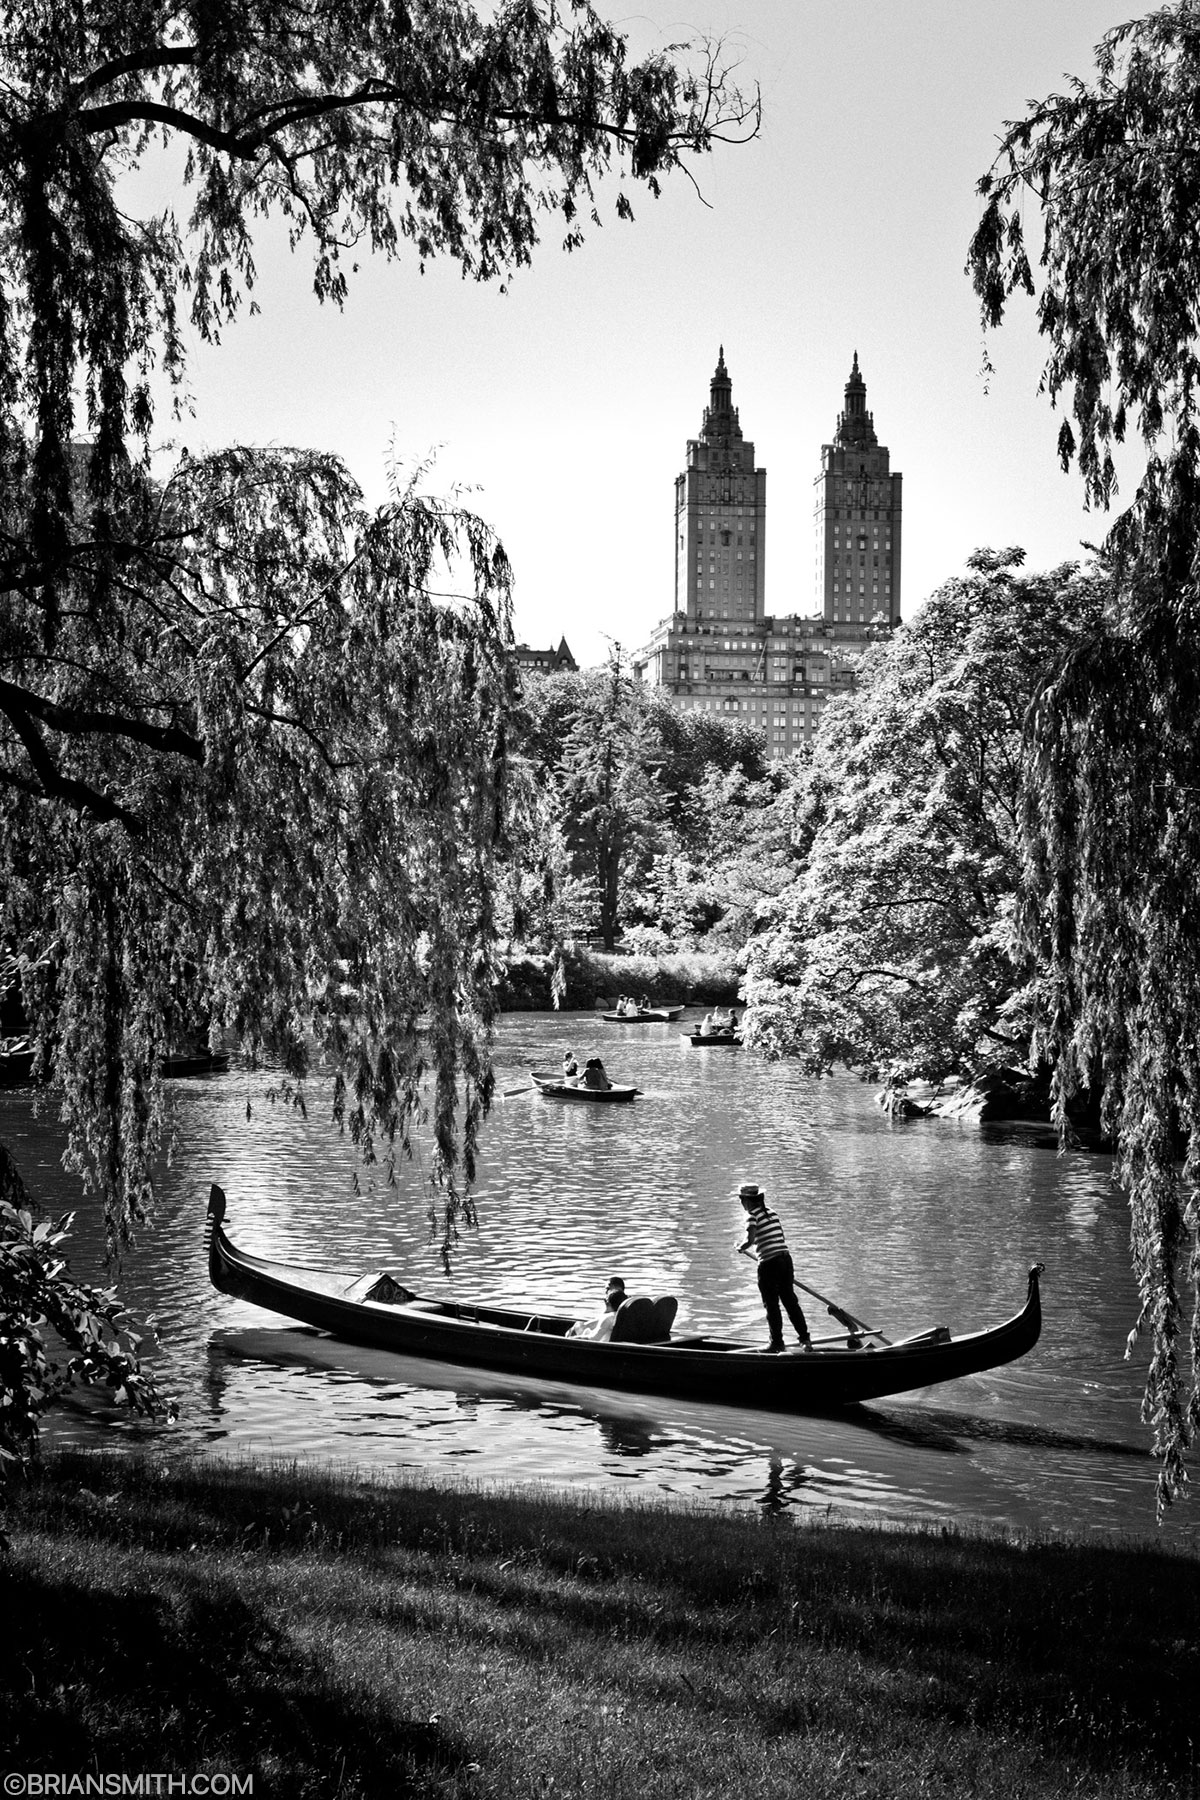 new york central park photographed with Zeiss Touit 32mm 1.8